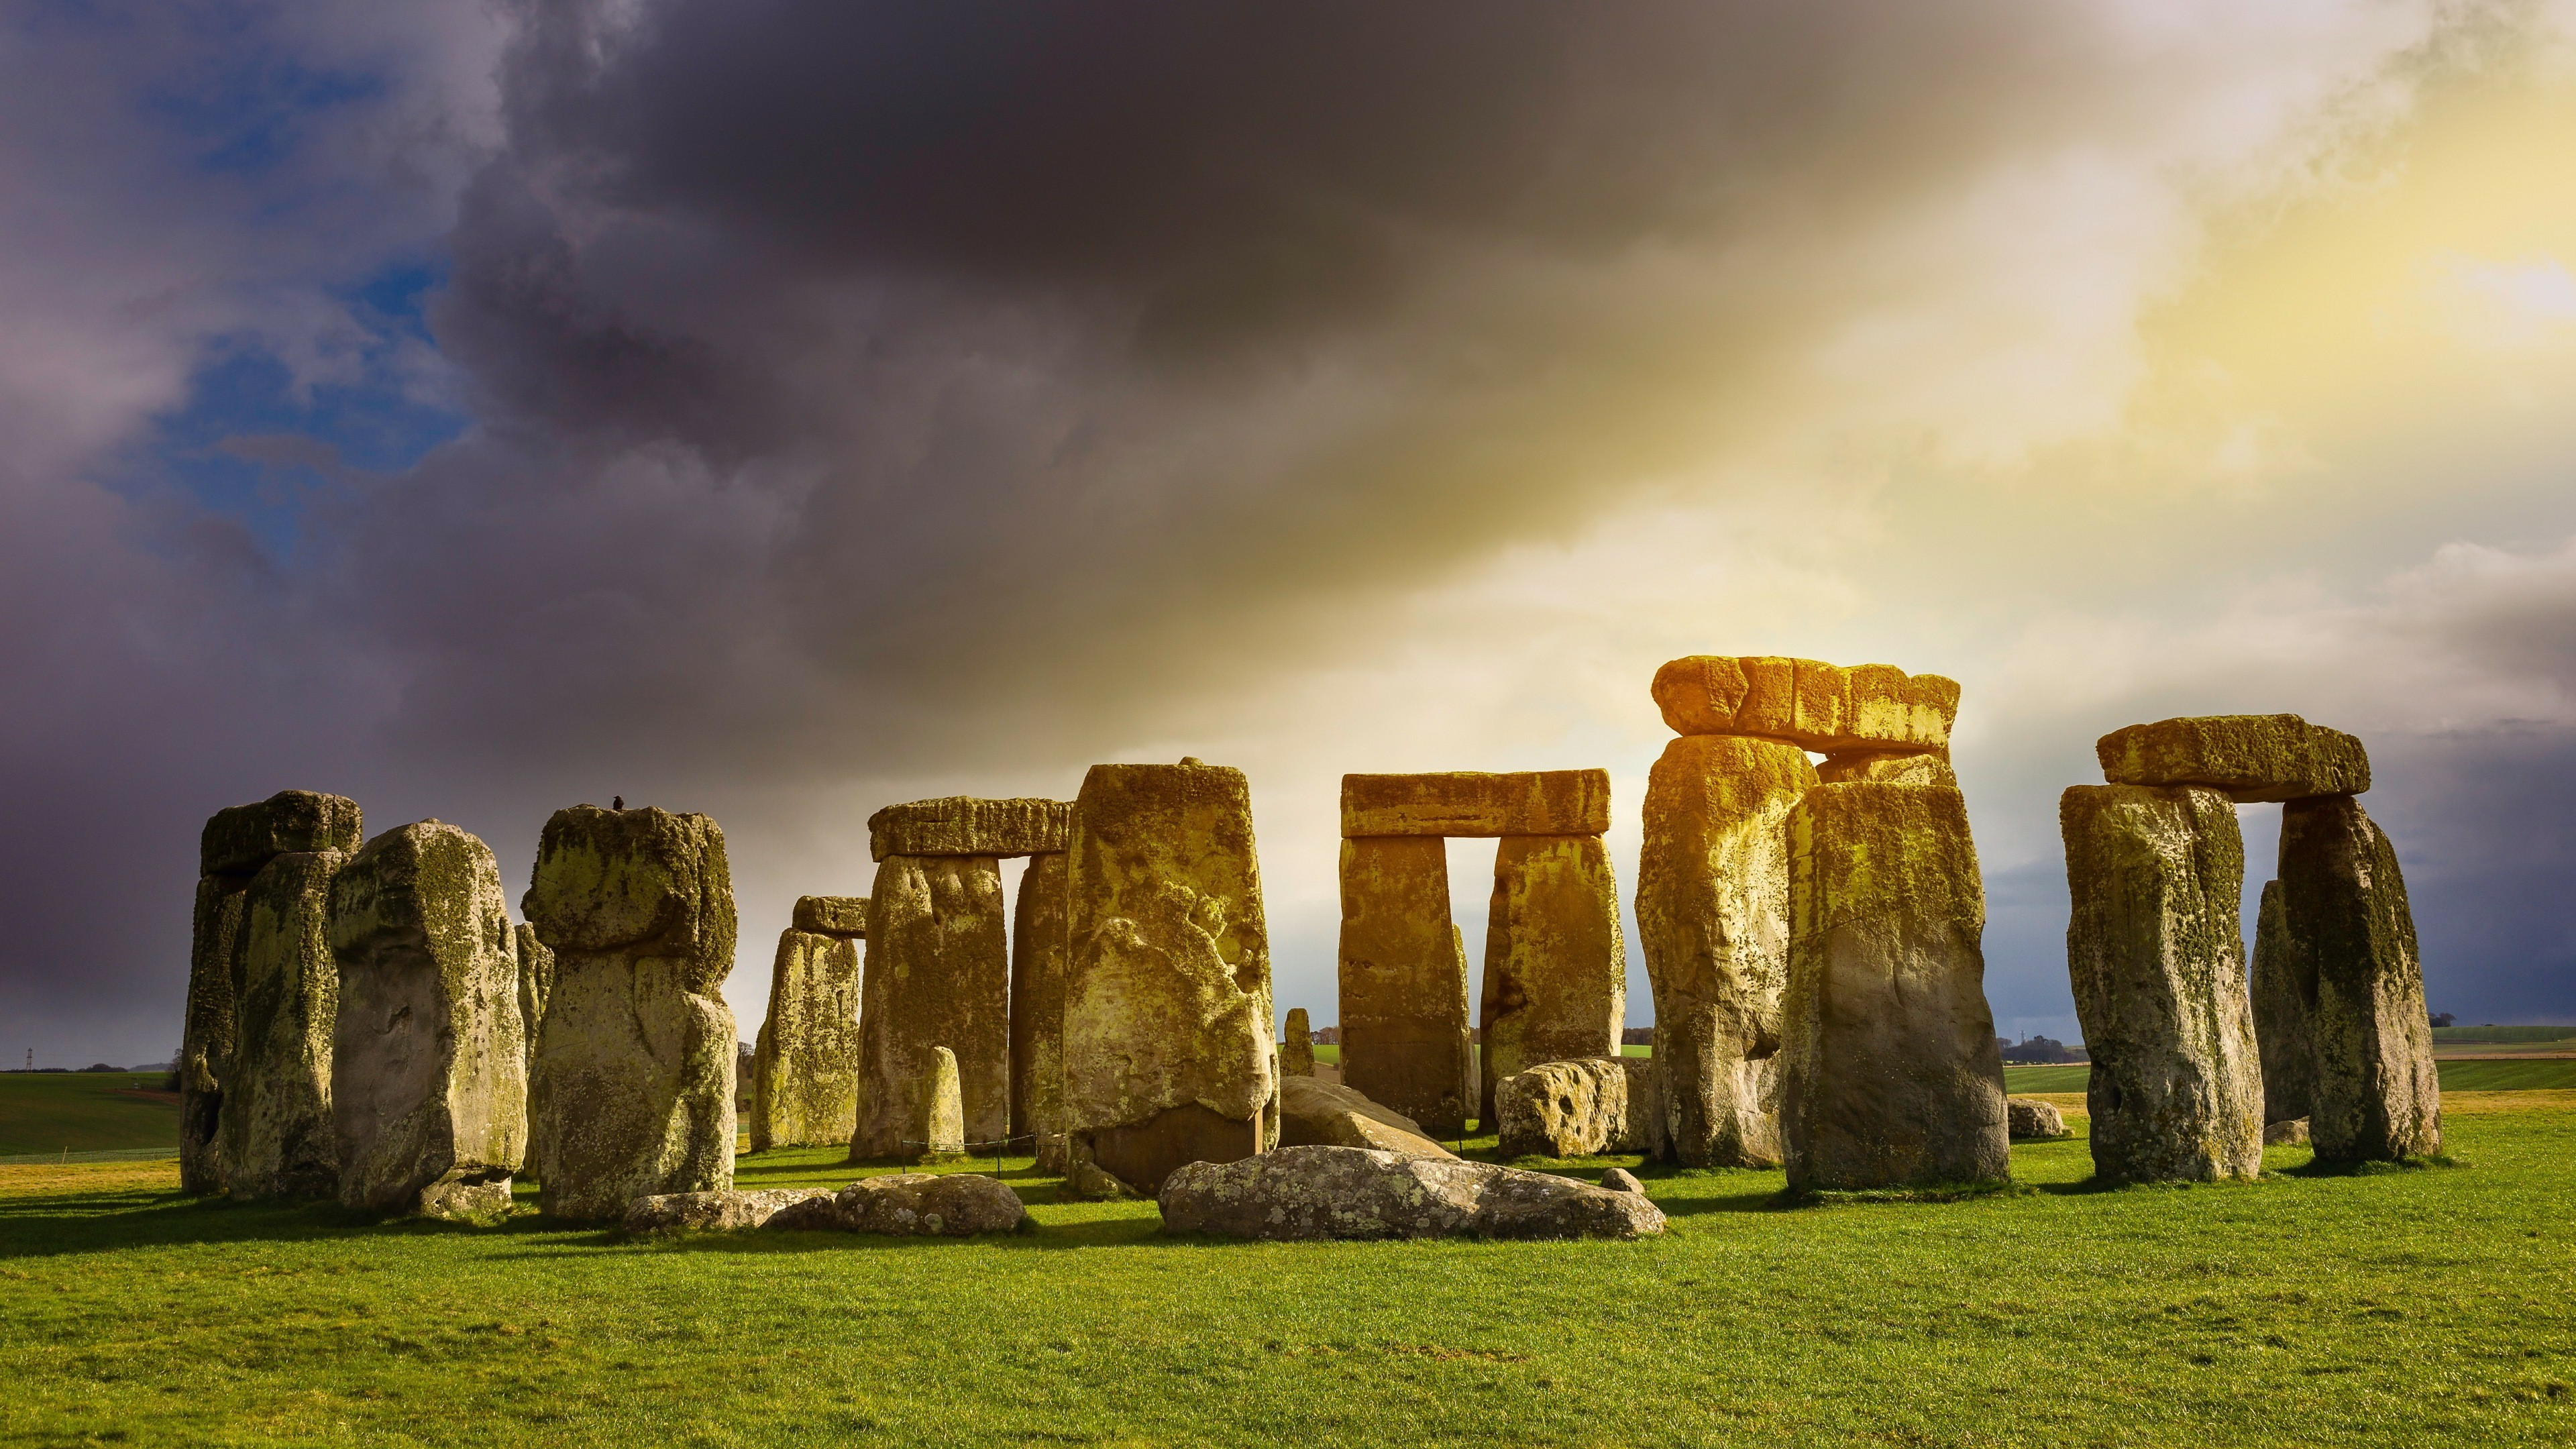 50 Stonehenge Wallpapers on WallpaperPlay 3840x2160